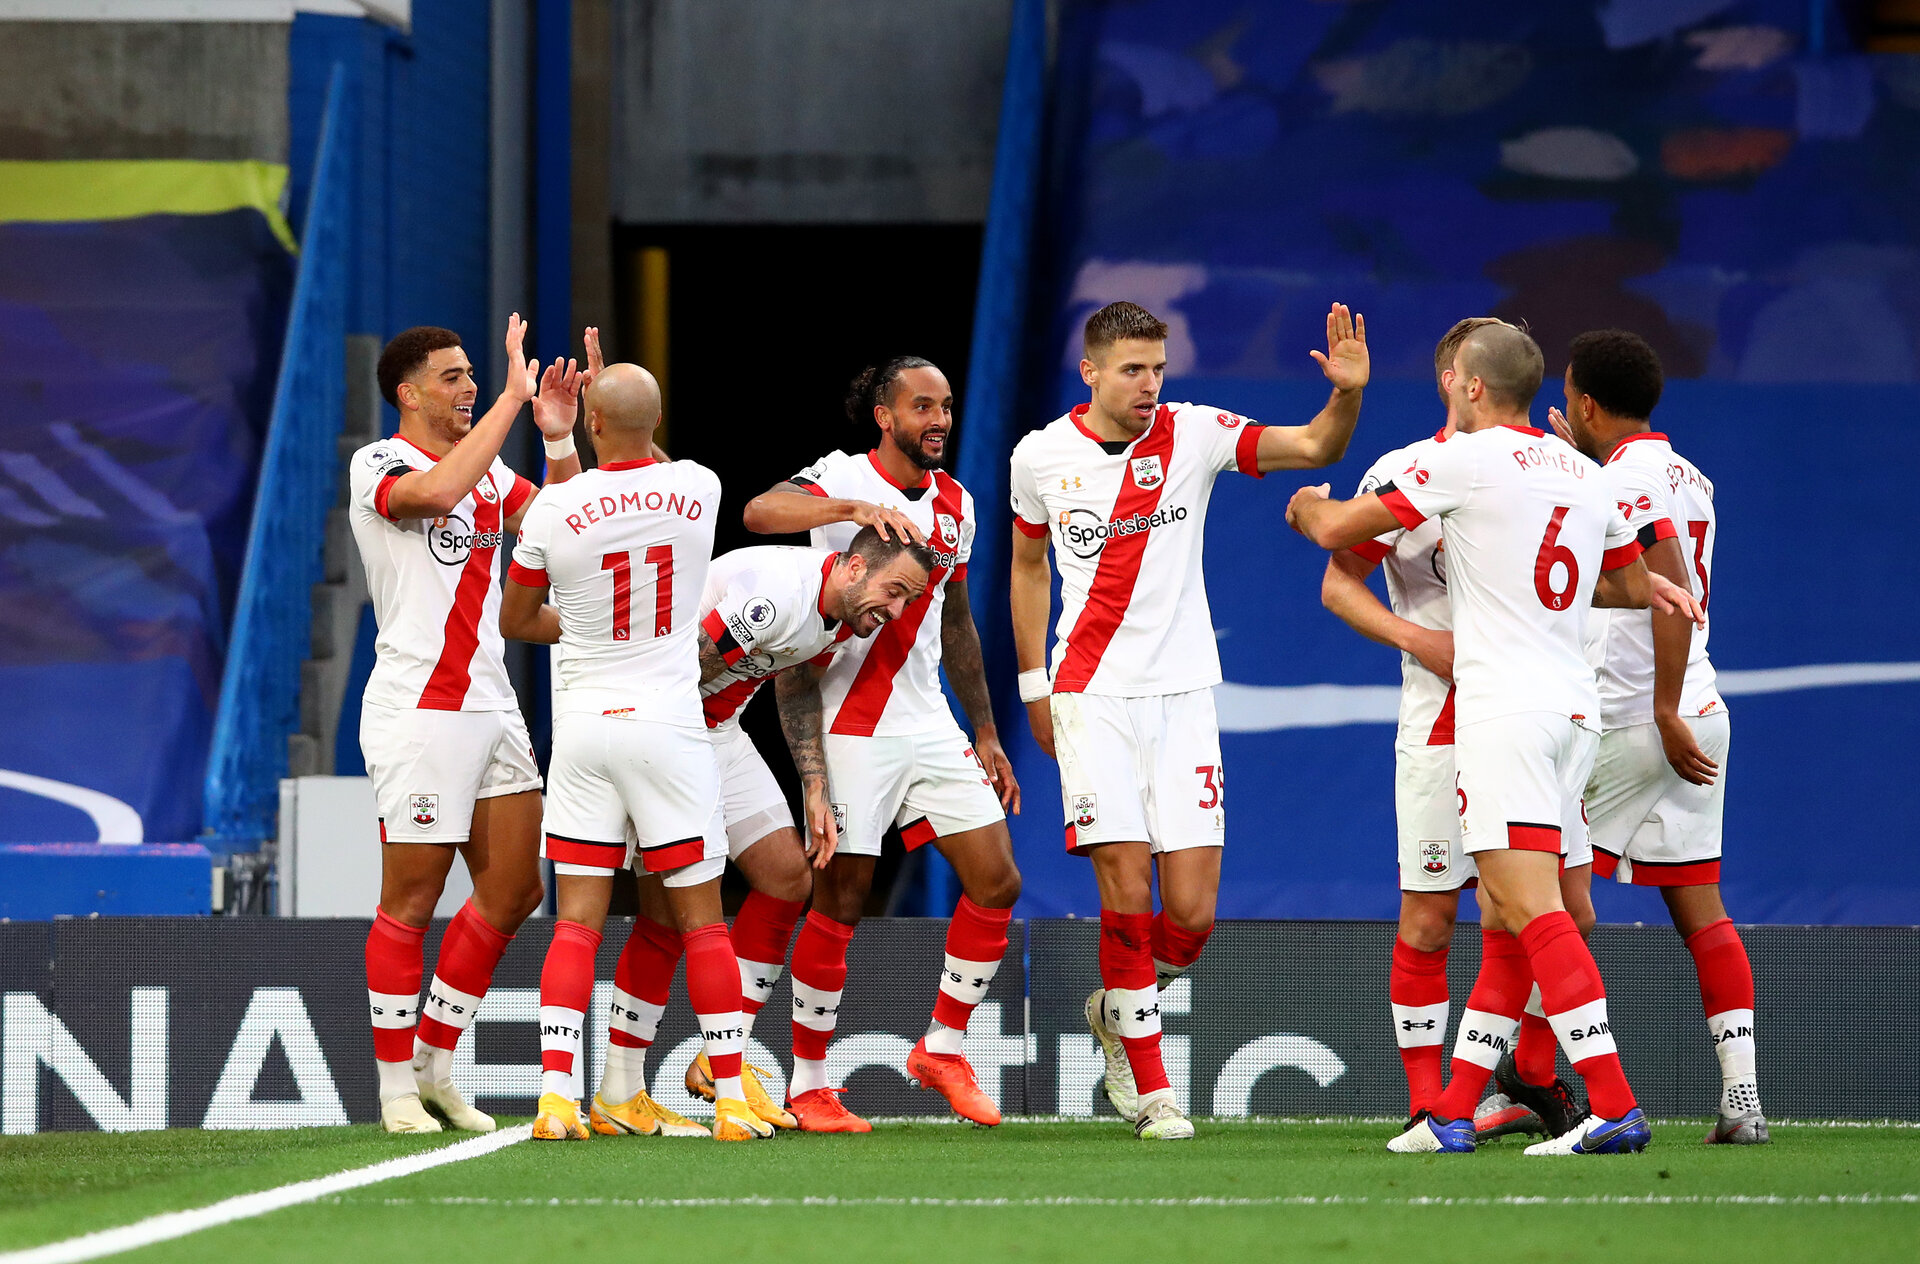 LONDON, ENGLAND - OCTOBER 17: Che Adams(L) of Southampton celebrates with his team mates during the Premier League match between Chelsea and Southampton at Stamford Bridge on October 17, 2020 in London, England. Sporting stadiums around the UK remain under strict restrictions due to the Coronavirus Pandemic as Government social distancing laws prohibit fans inside venues resulting in games being played behind closed doors. (Photo by Matt Watson/Southampton FC via Getty Images)